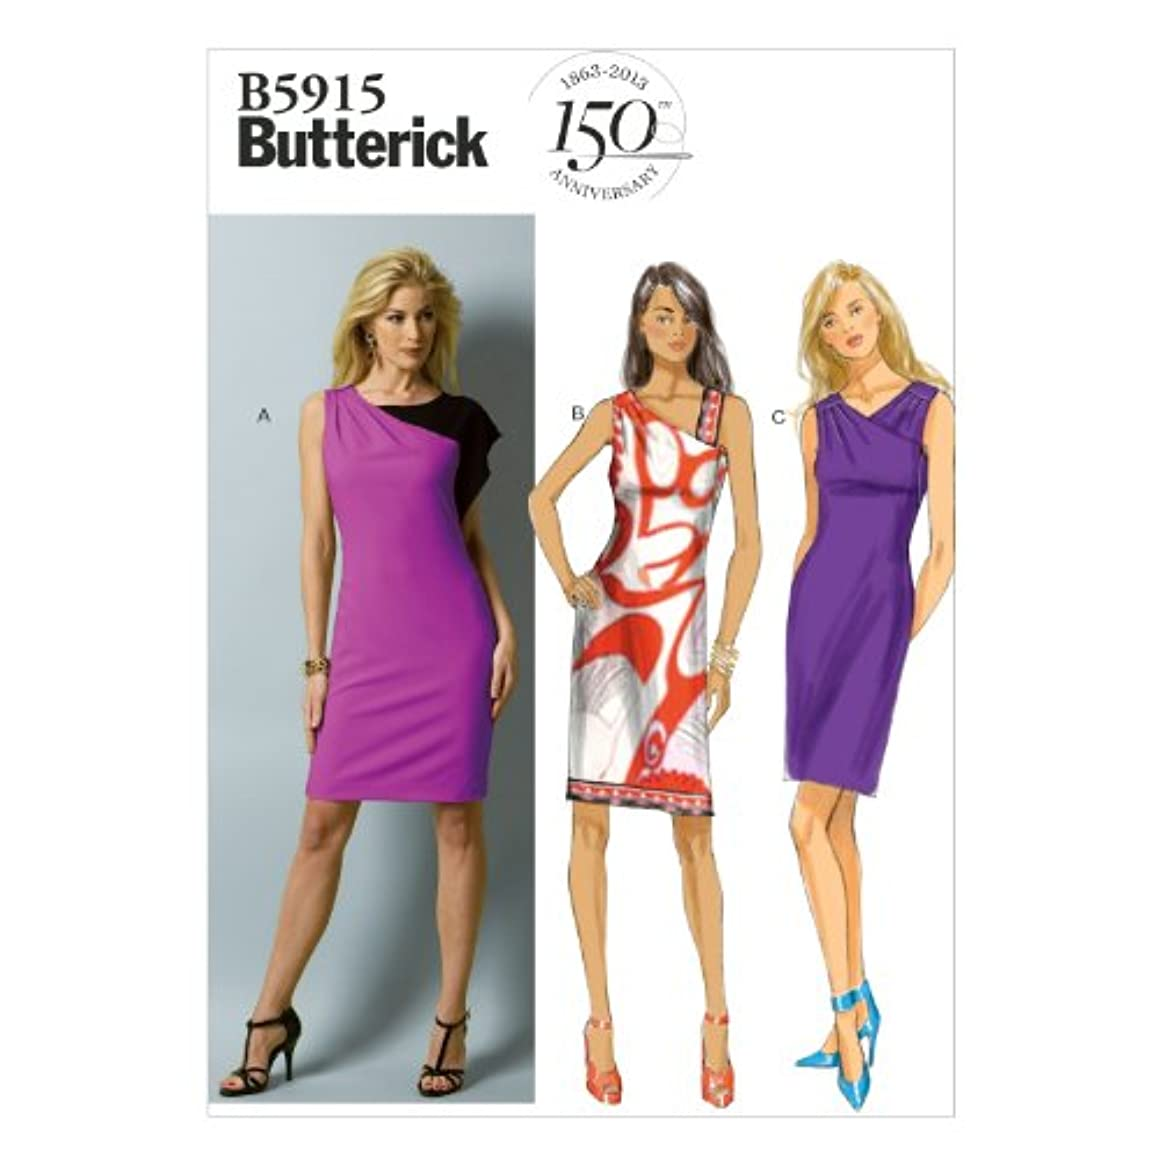 BUTTERICK PATTERNS B5915 Misses' Dress Sewing Template, Size E5 (14-16-18-20-22)